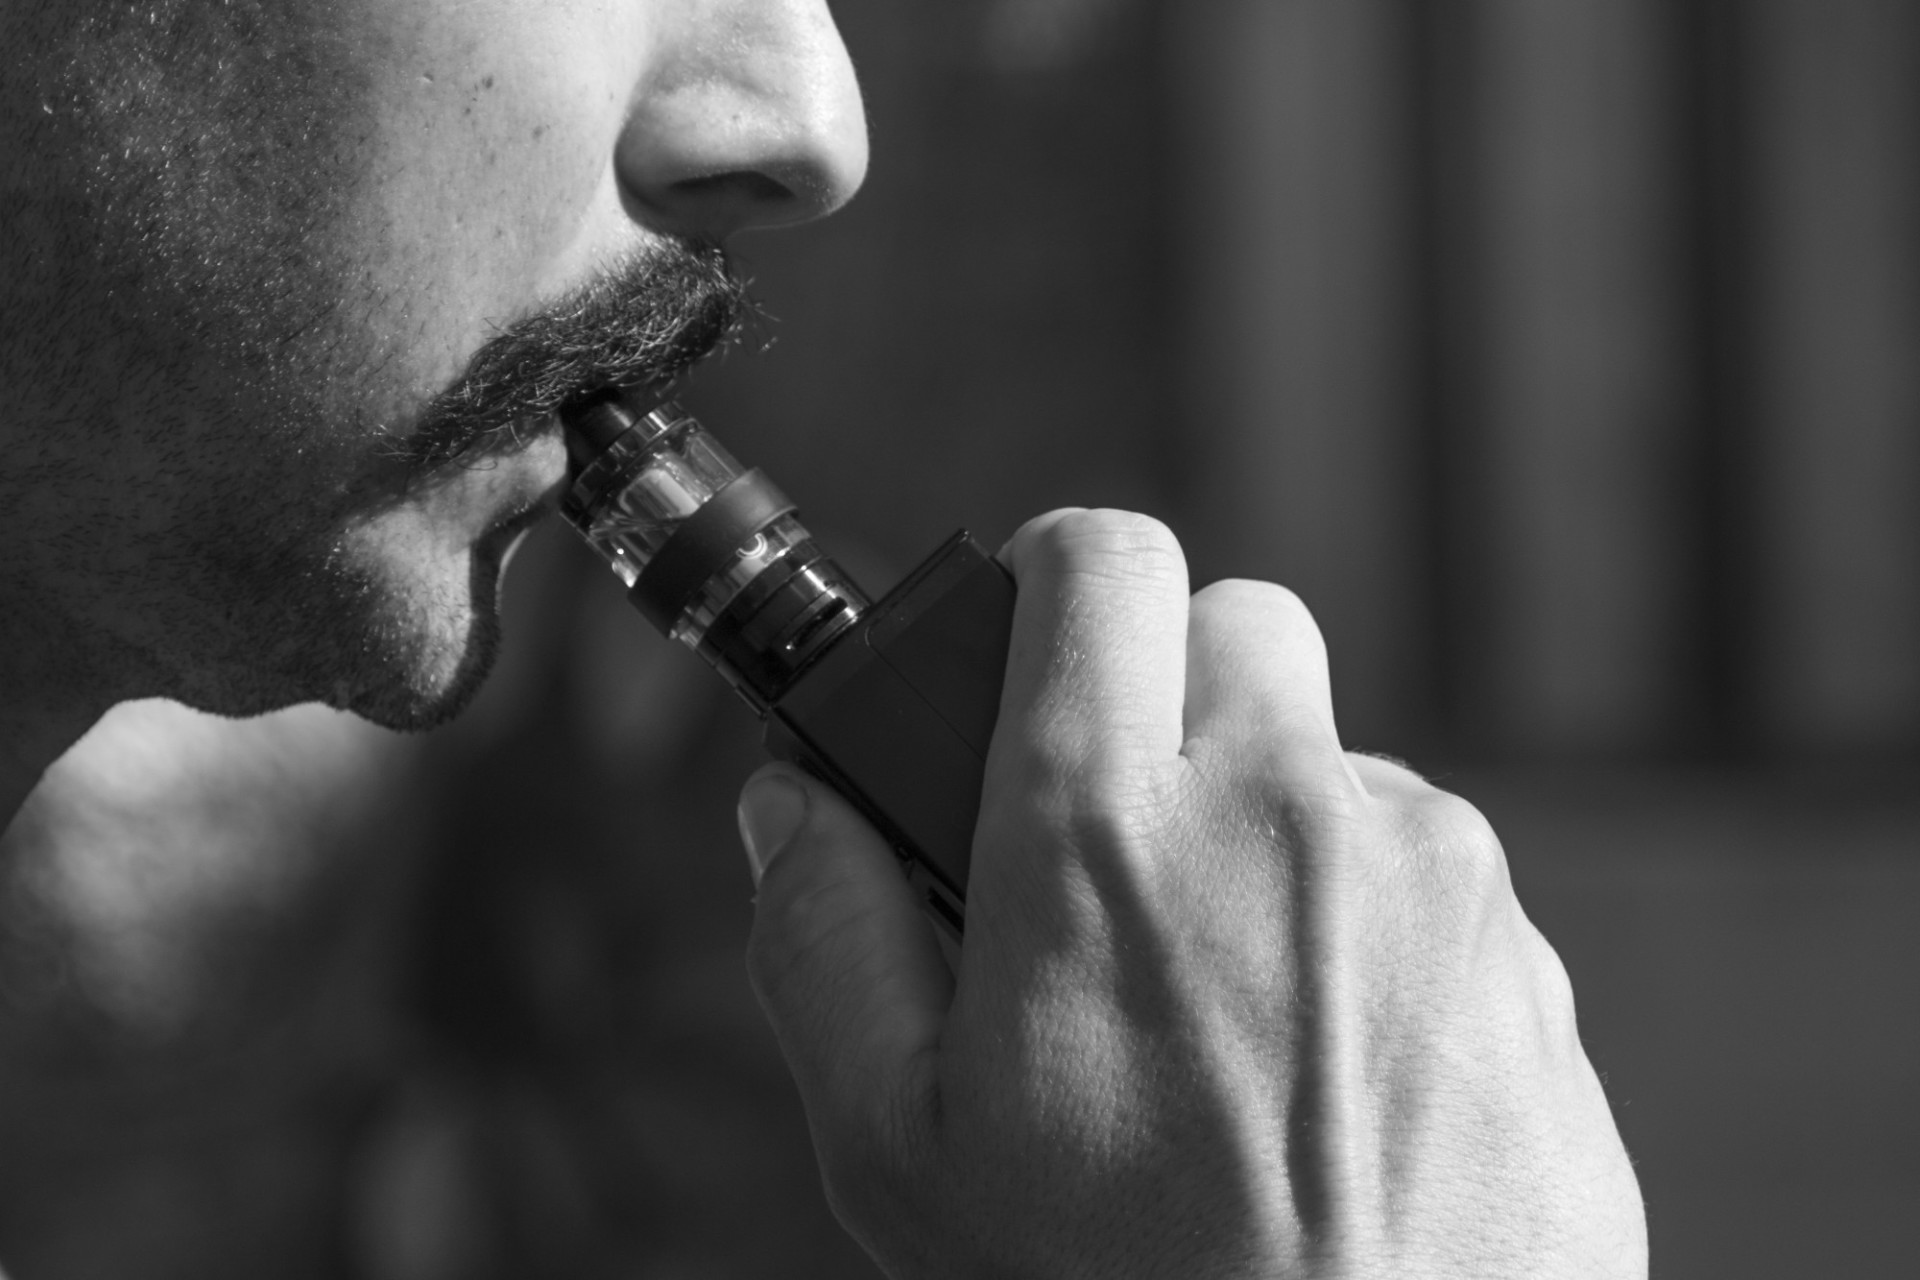 PG vs VG: What They Are and How to Use Them When Vaping